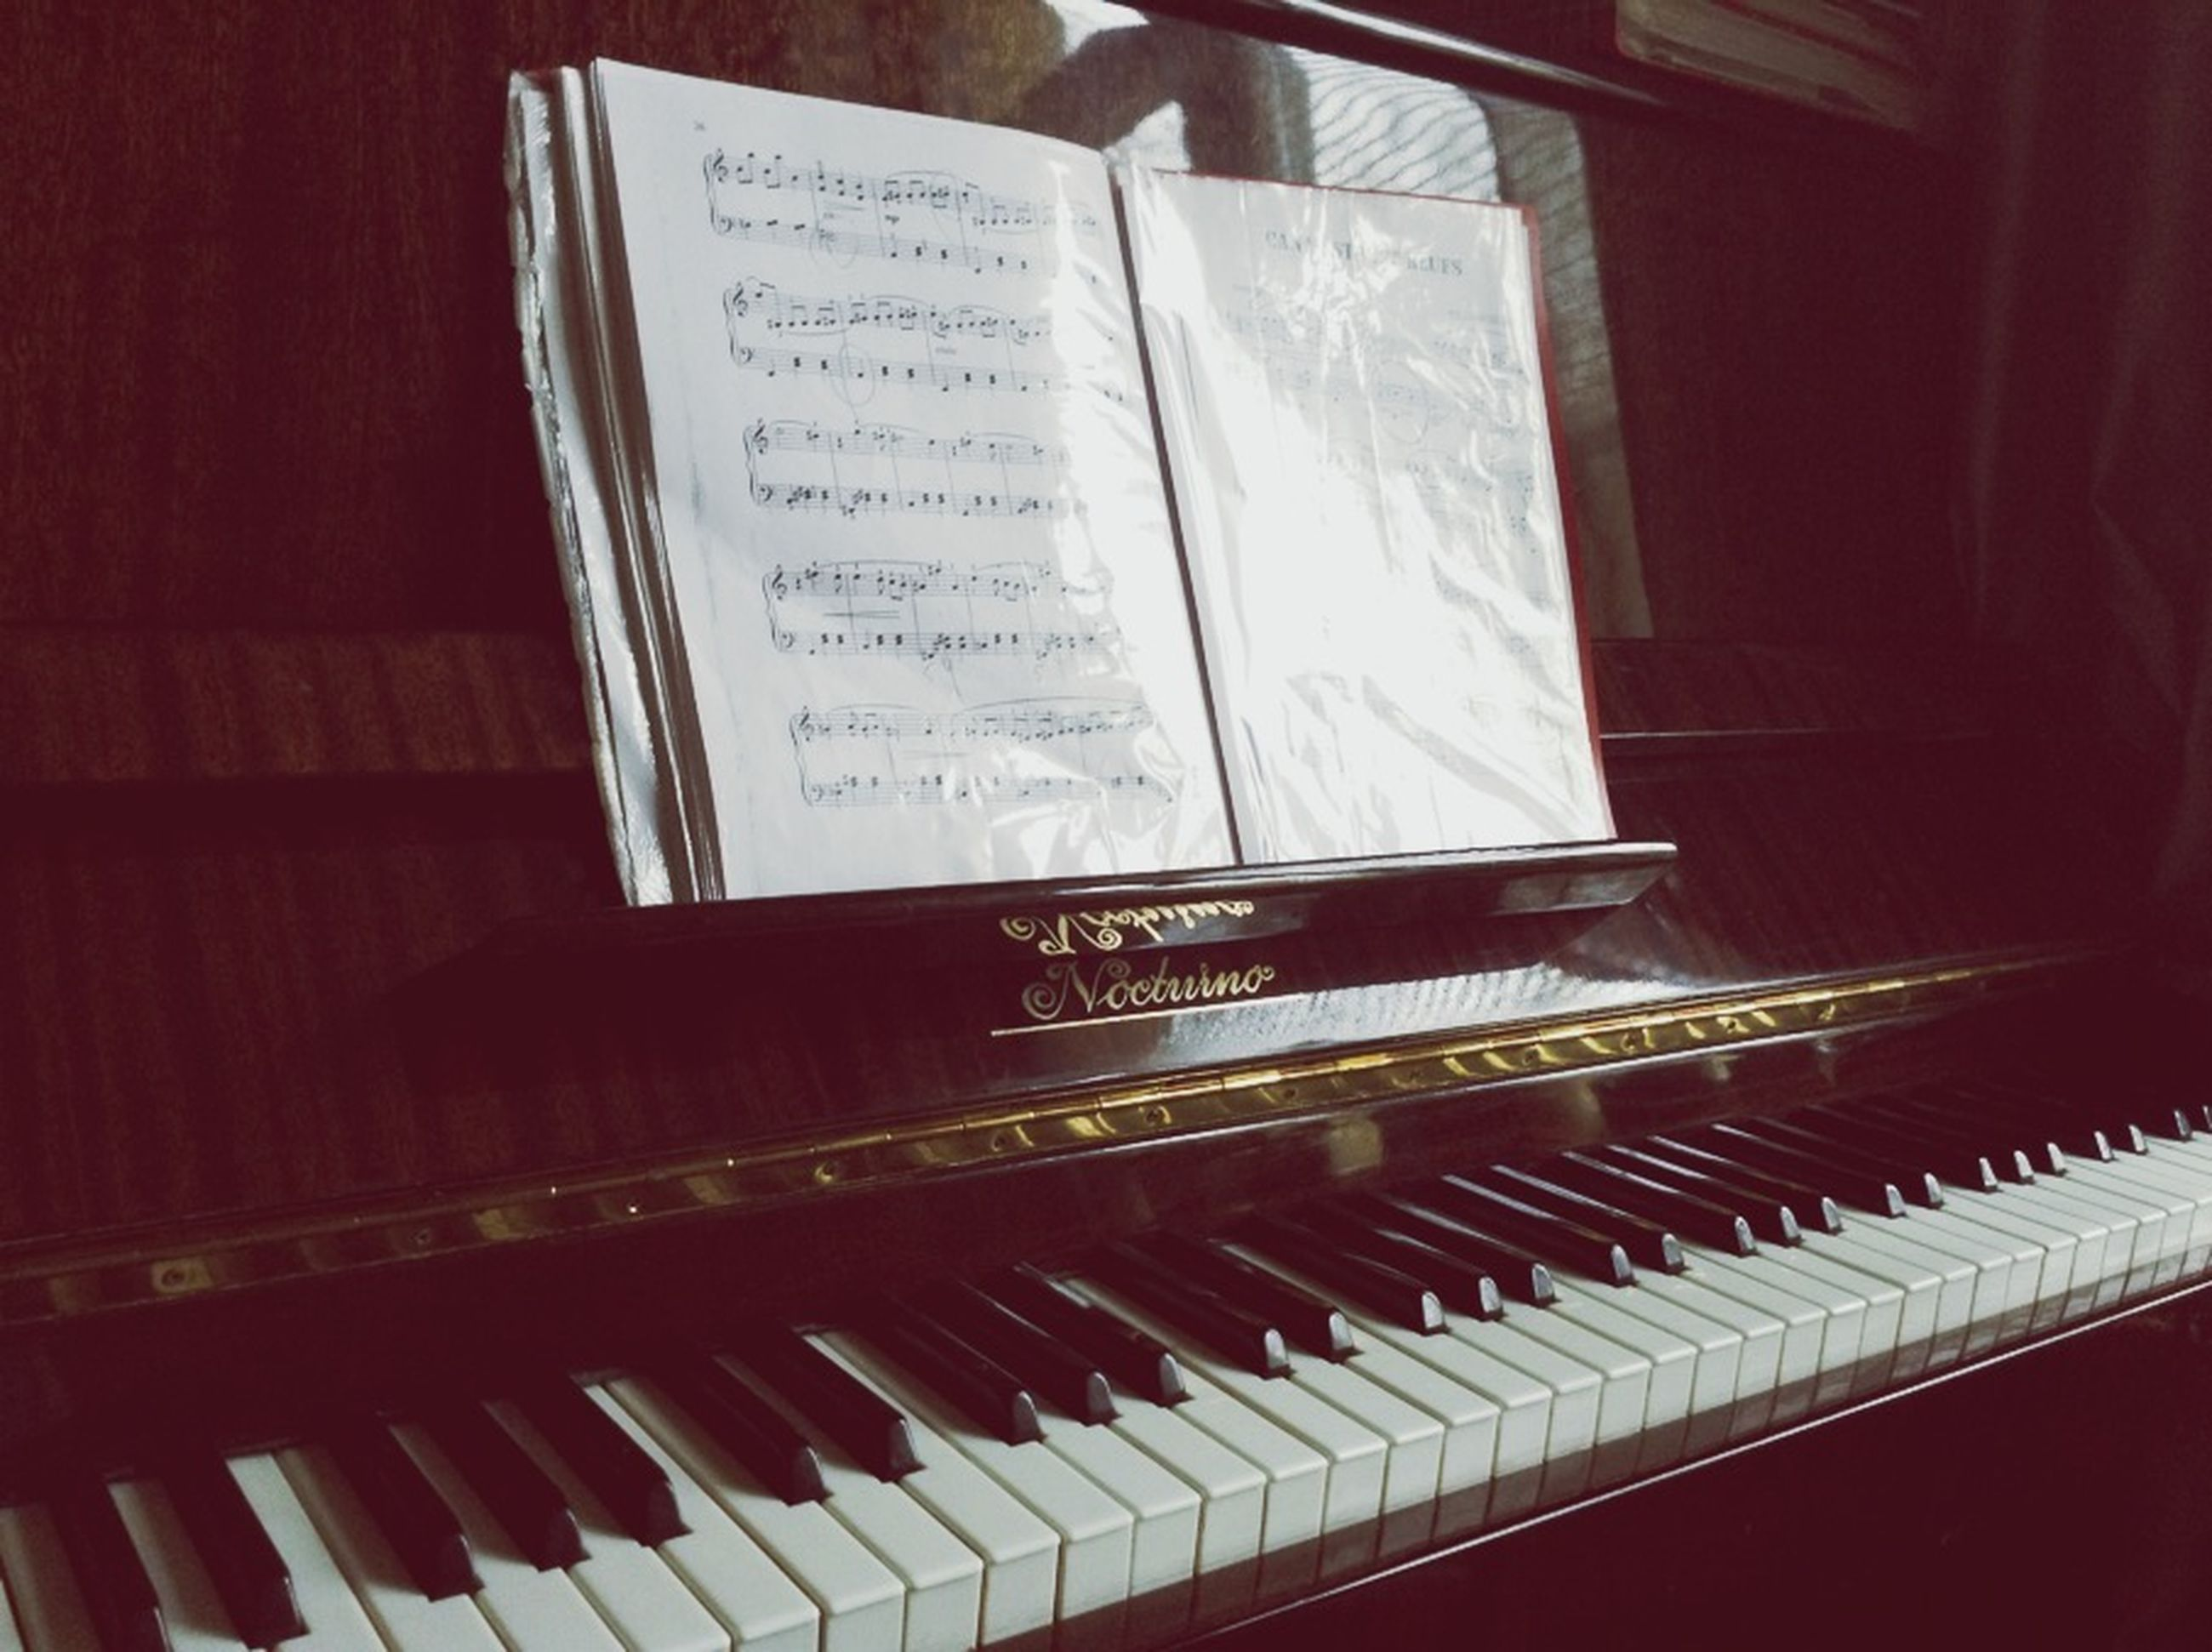 indoors, music, musical instrument, piano, arts culture and entertainment, technology, close-up, book, communication, table, text, high angle view, musical equipment, no people, piano key, chair, absence, wood - material, home interior, education